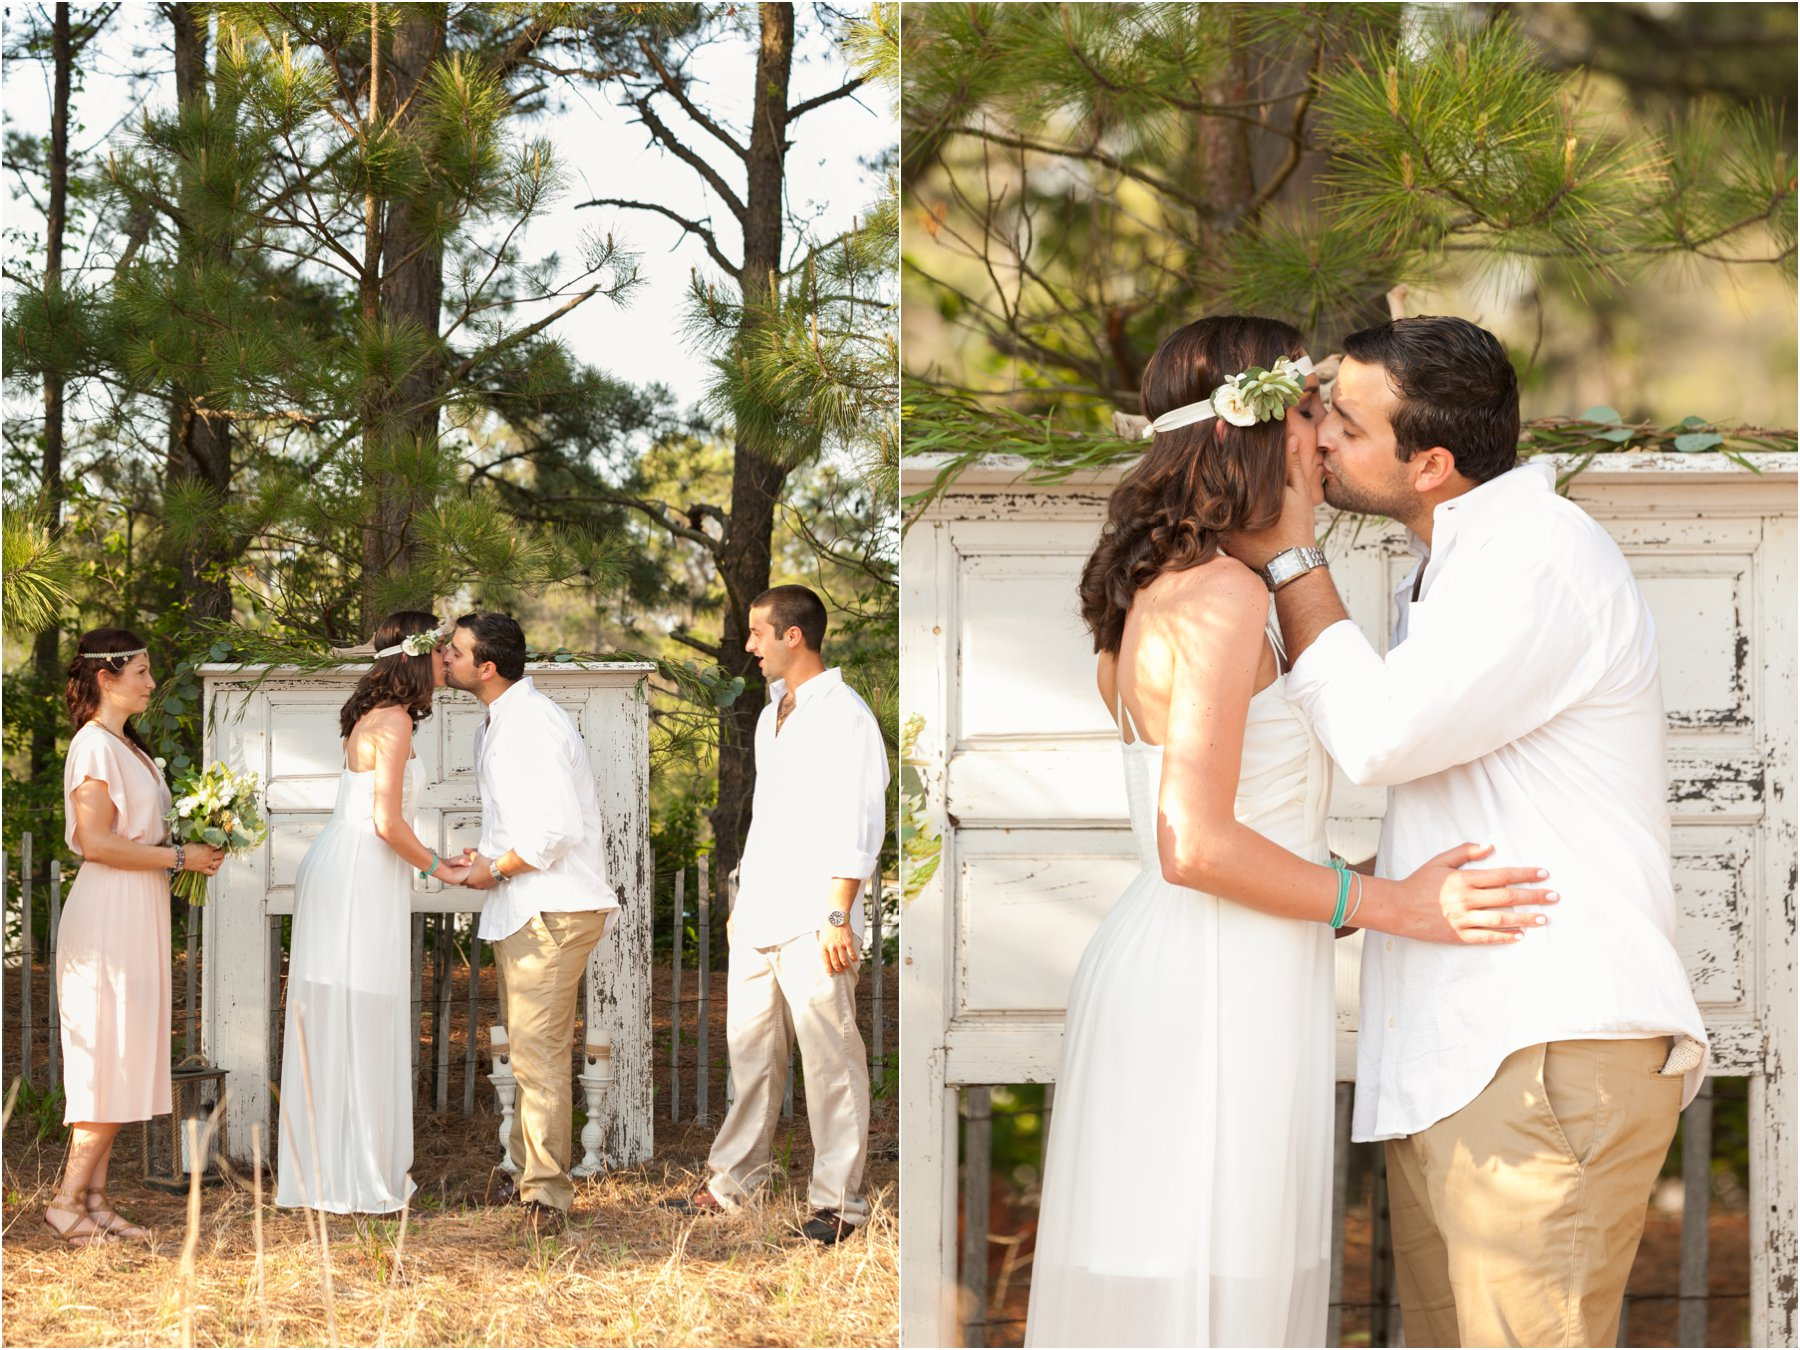 Nofolk_Zoo_engagement_photography_virginia_Jessica_ryan_photography_0152